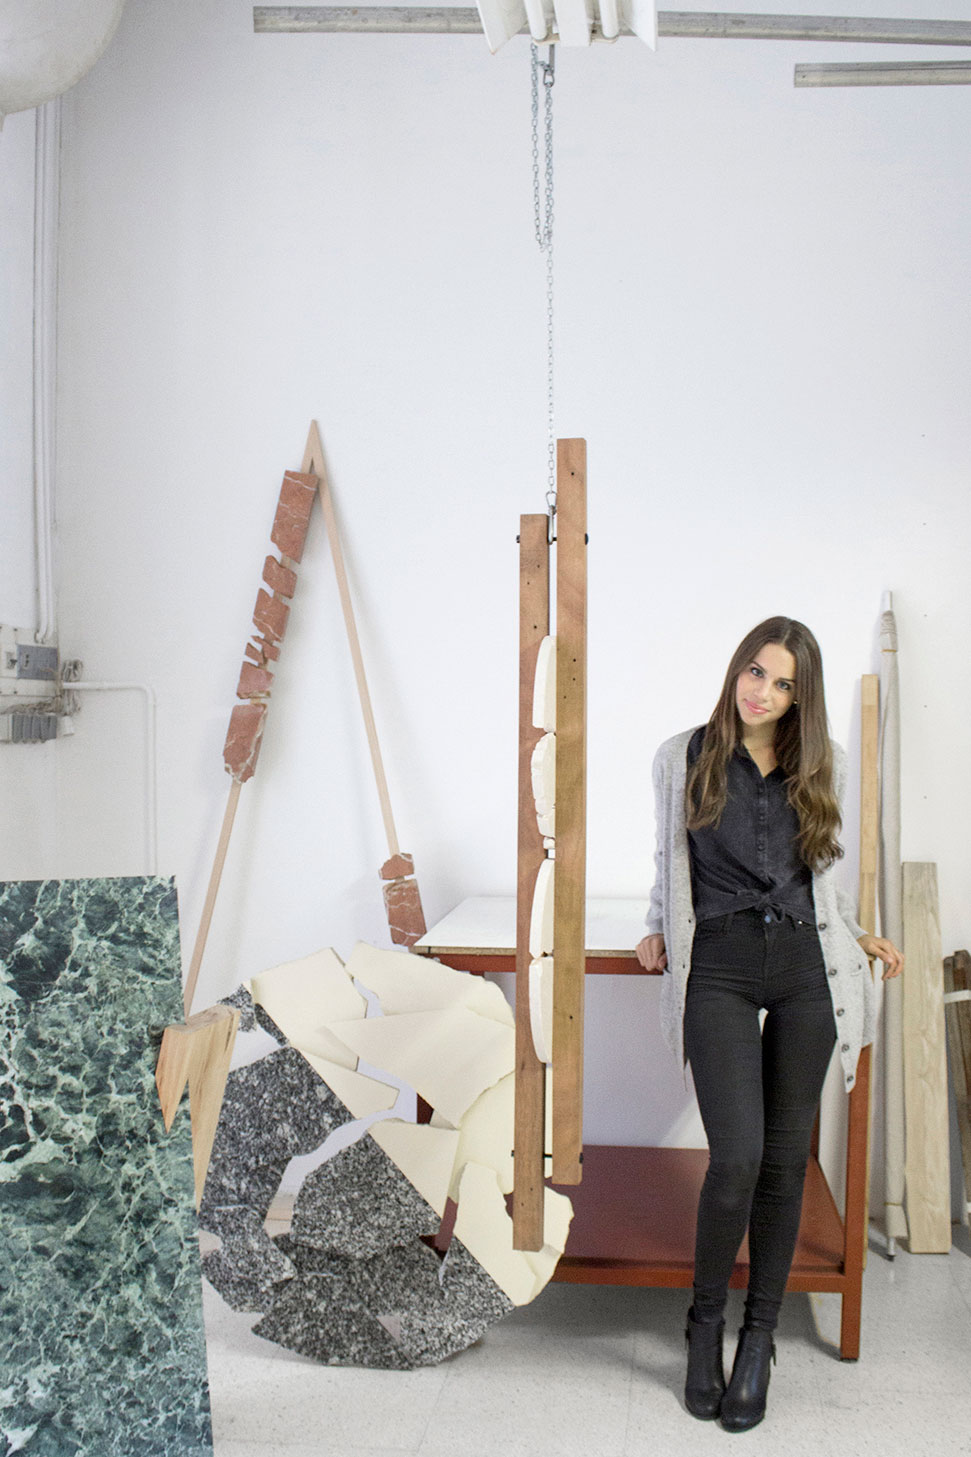 Carla Cascales' Sculpture Project | Yellowtrace